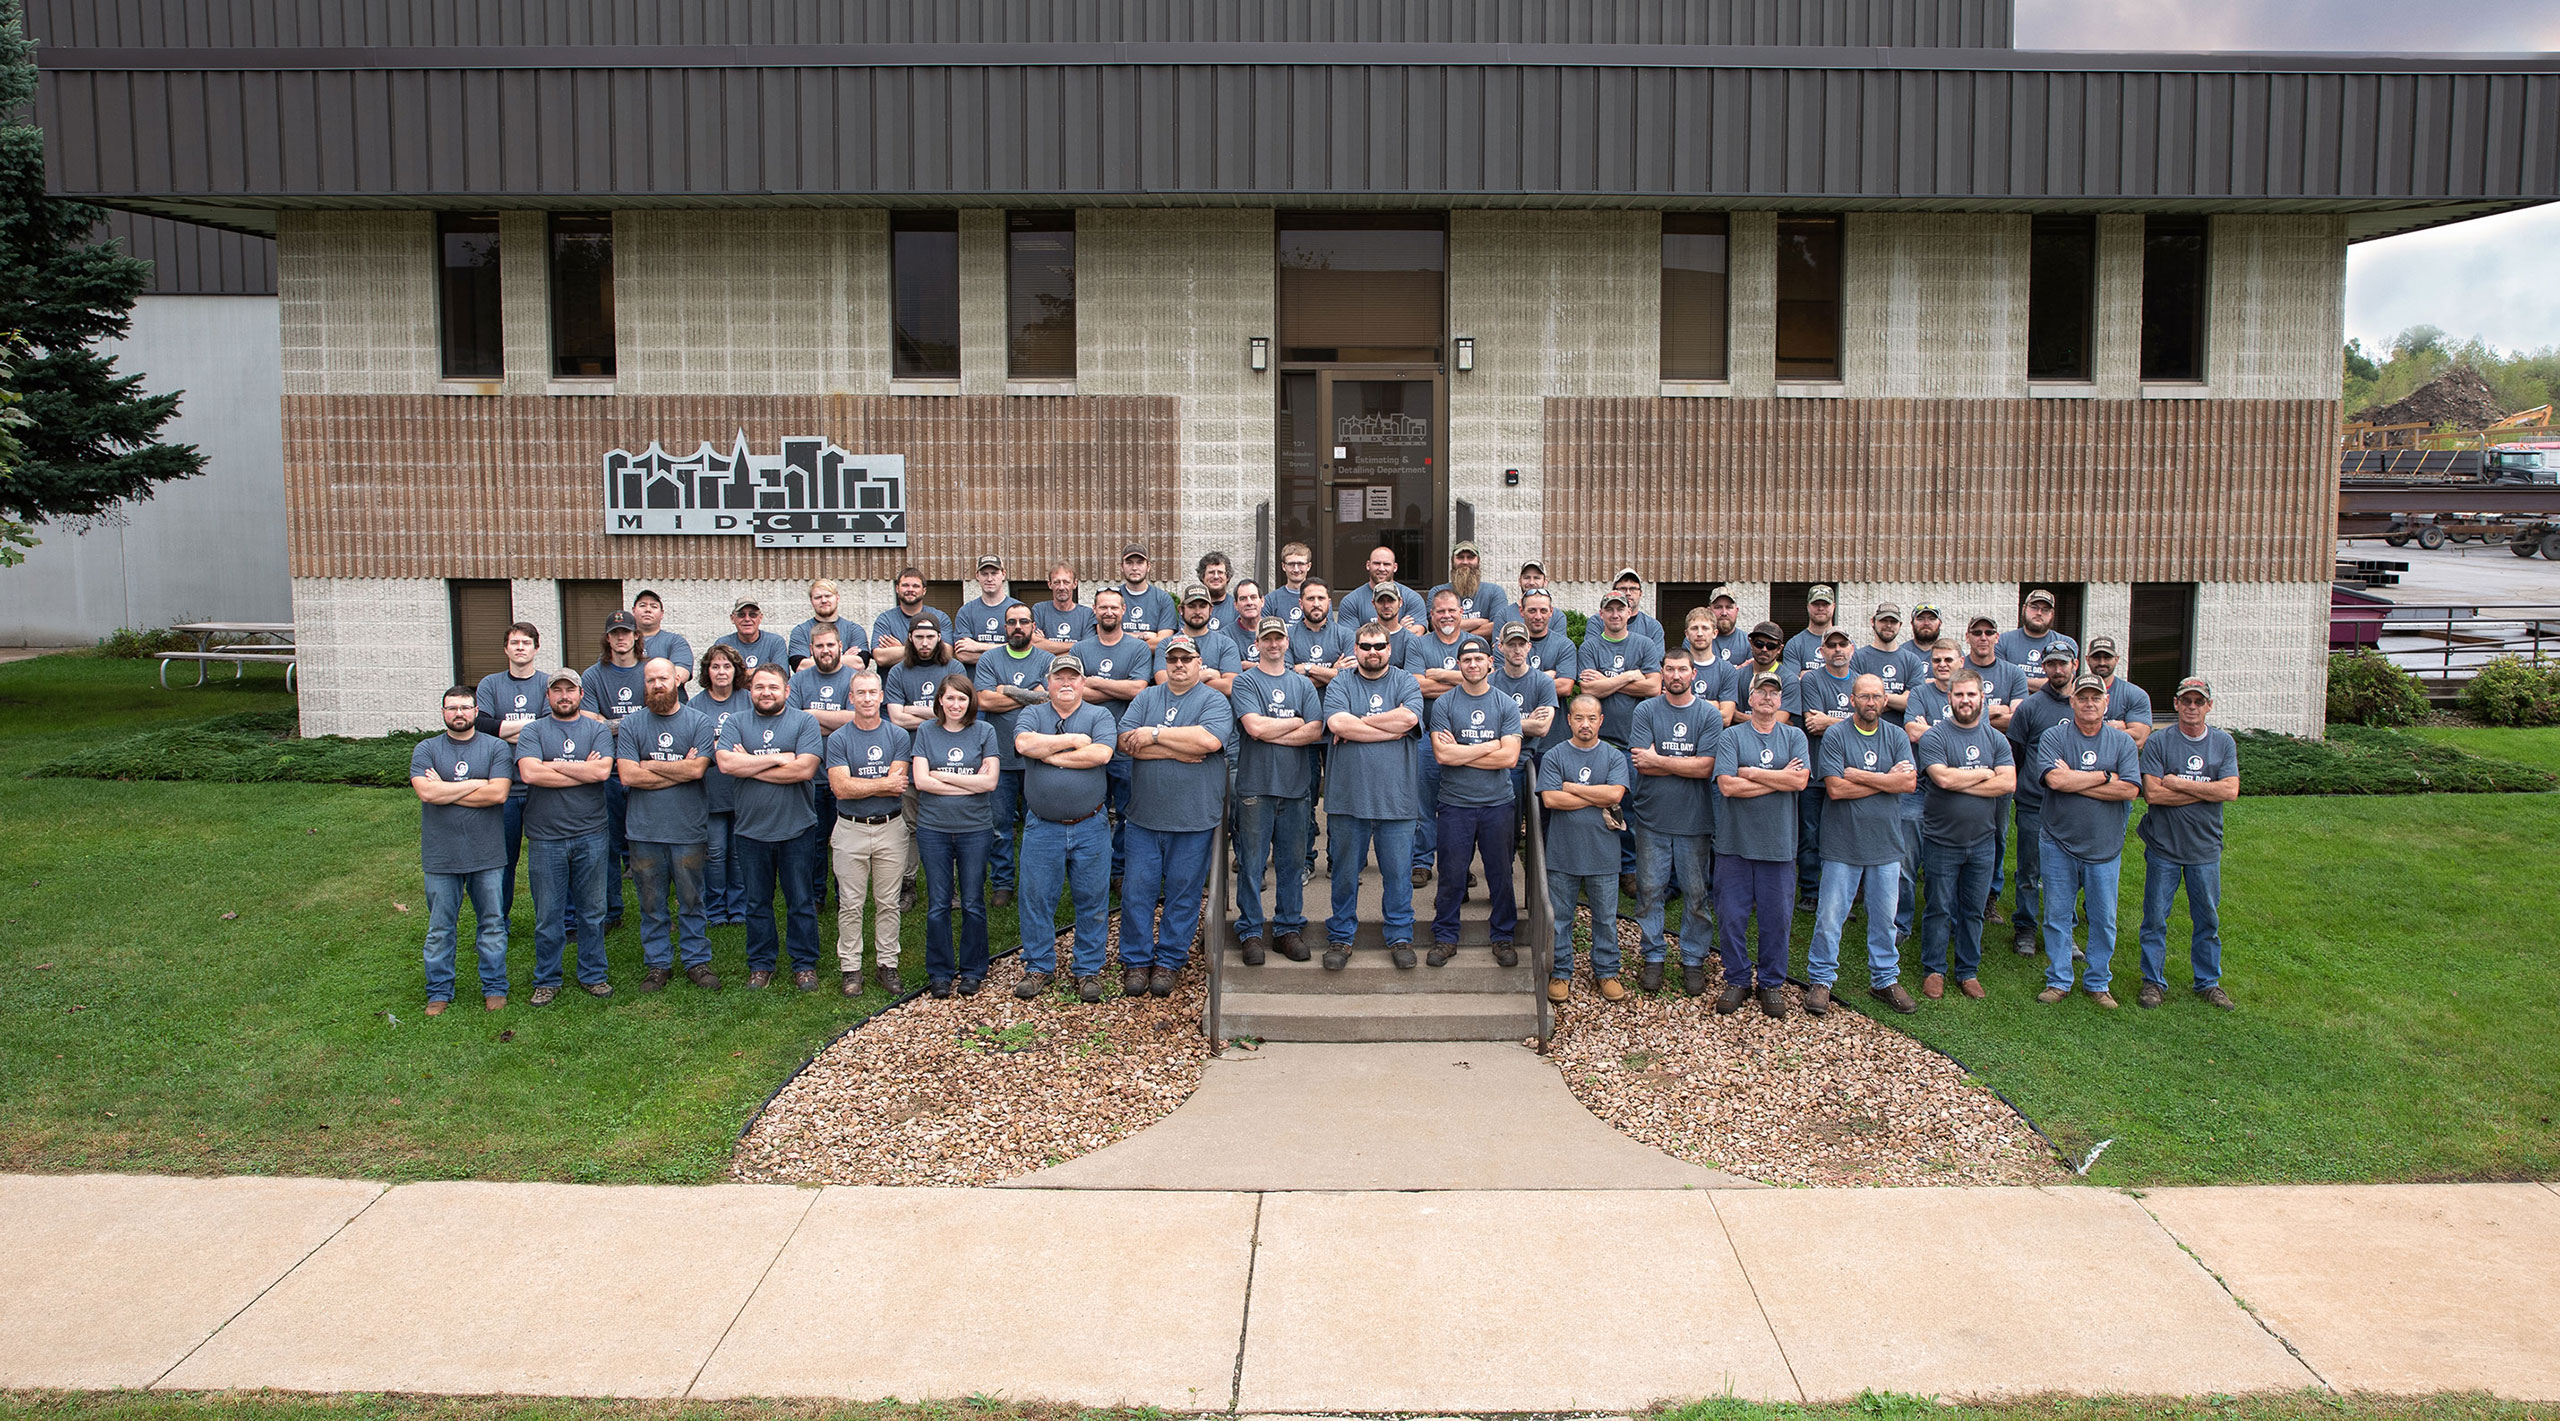 Image of the Tough Job Team of Mid-City steel, La Crosse, WI